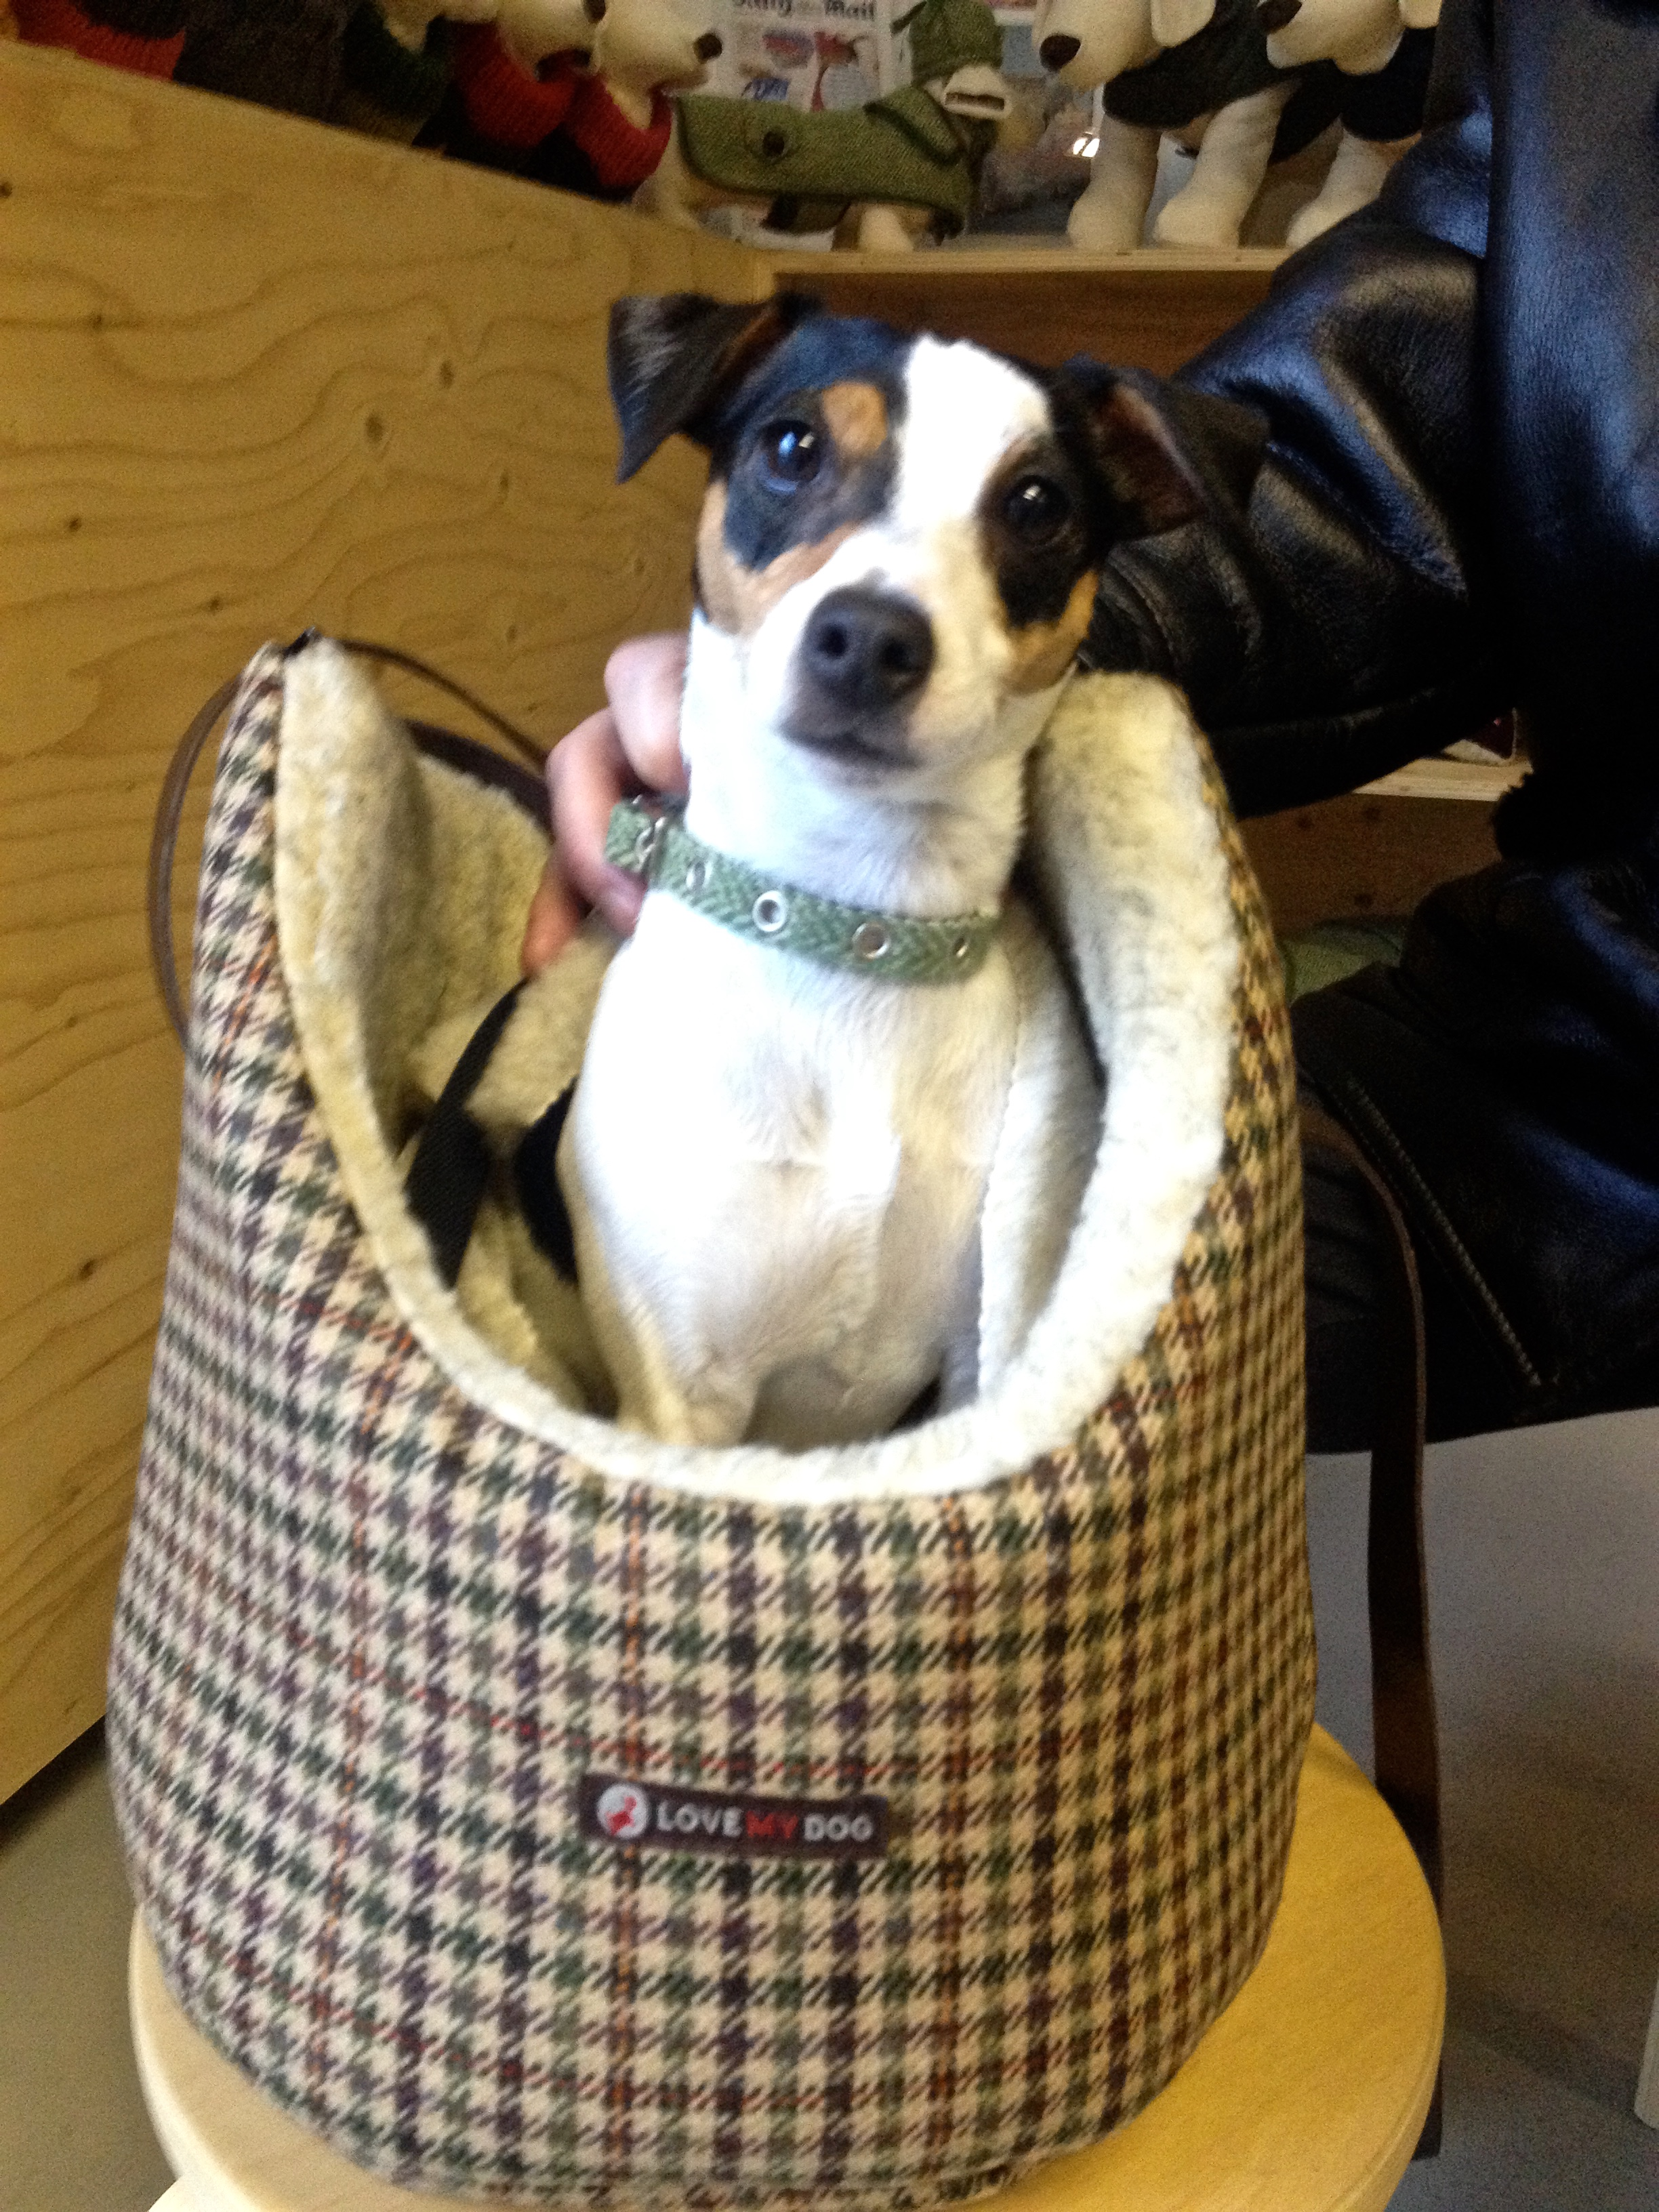 """Another time, I hurt my knee and couldn't play ball of SIX WHOLE WEEKS. It was NO FUN AT ALL.Olive Daddy had to carry me around in a special dog bag. At least the bag was very stylish. It's made of a fabric is called Oxford tweed. When Olive Mommy saw the bag she said, """"Oooh, darling!"""" Can you say, """"Oooh, darling!""""?"""